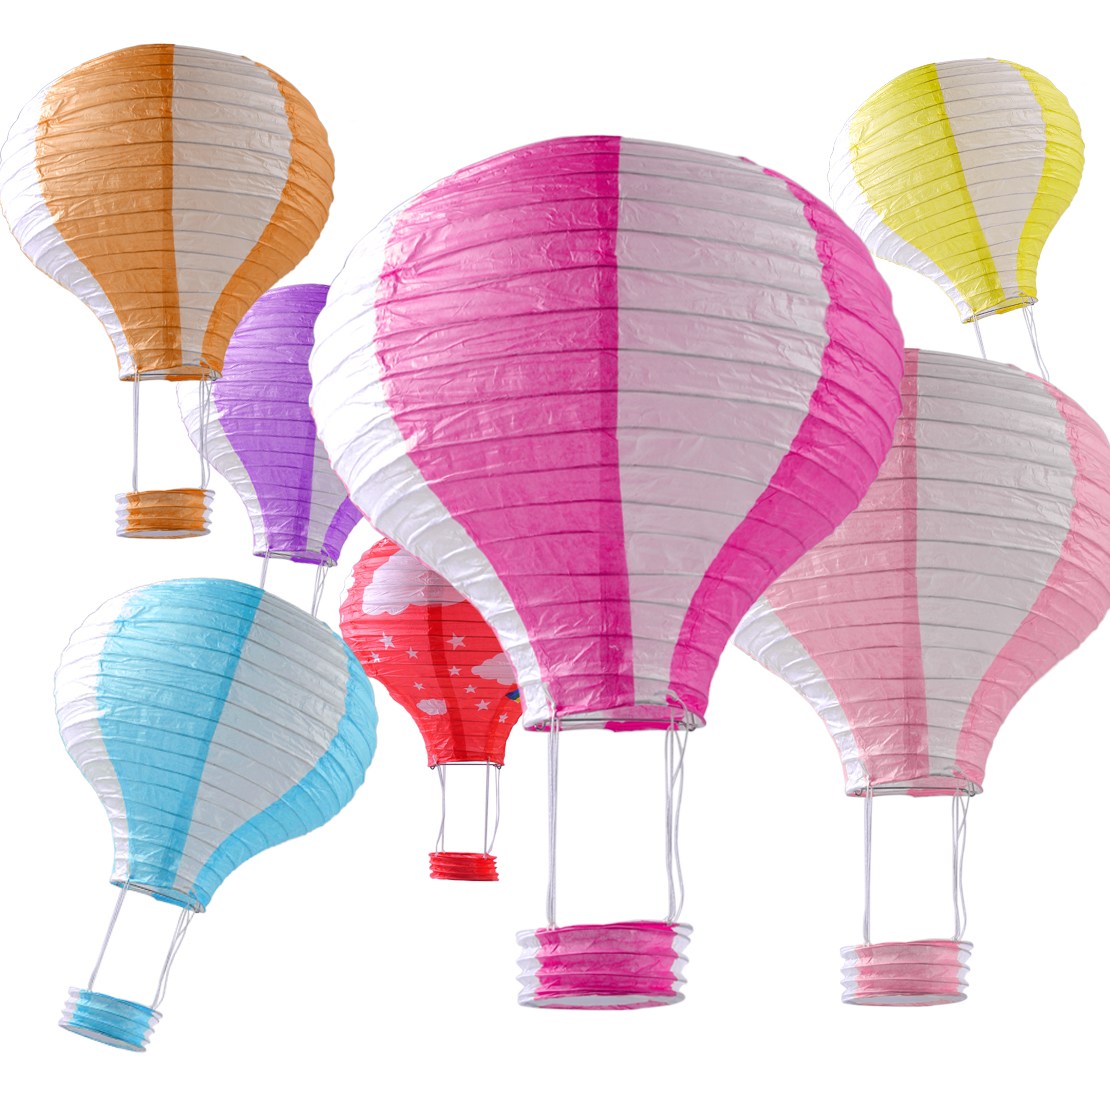 hei luftballon papierlaterne lampion party hochzeit hot air laterne balloon neu ebay. Black Bedroom Furniture Sets. Home Design Ideas